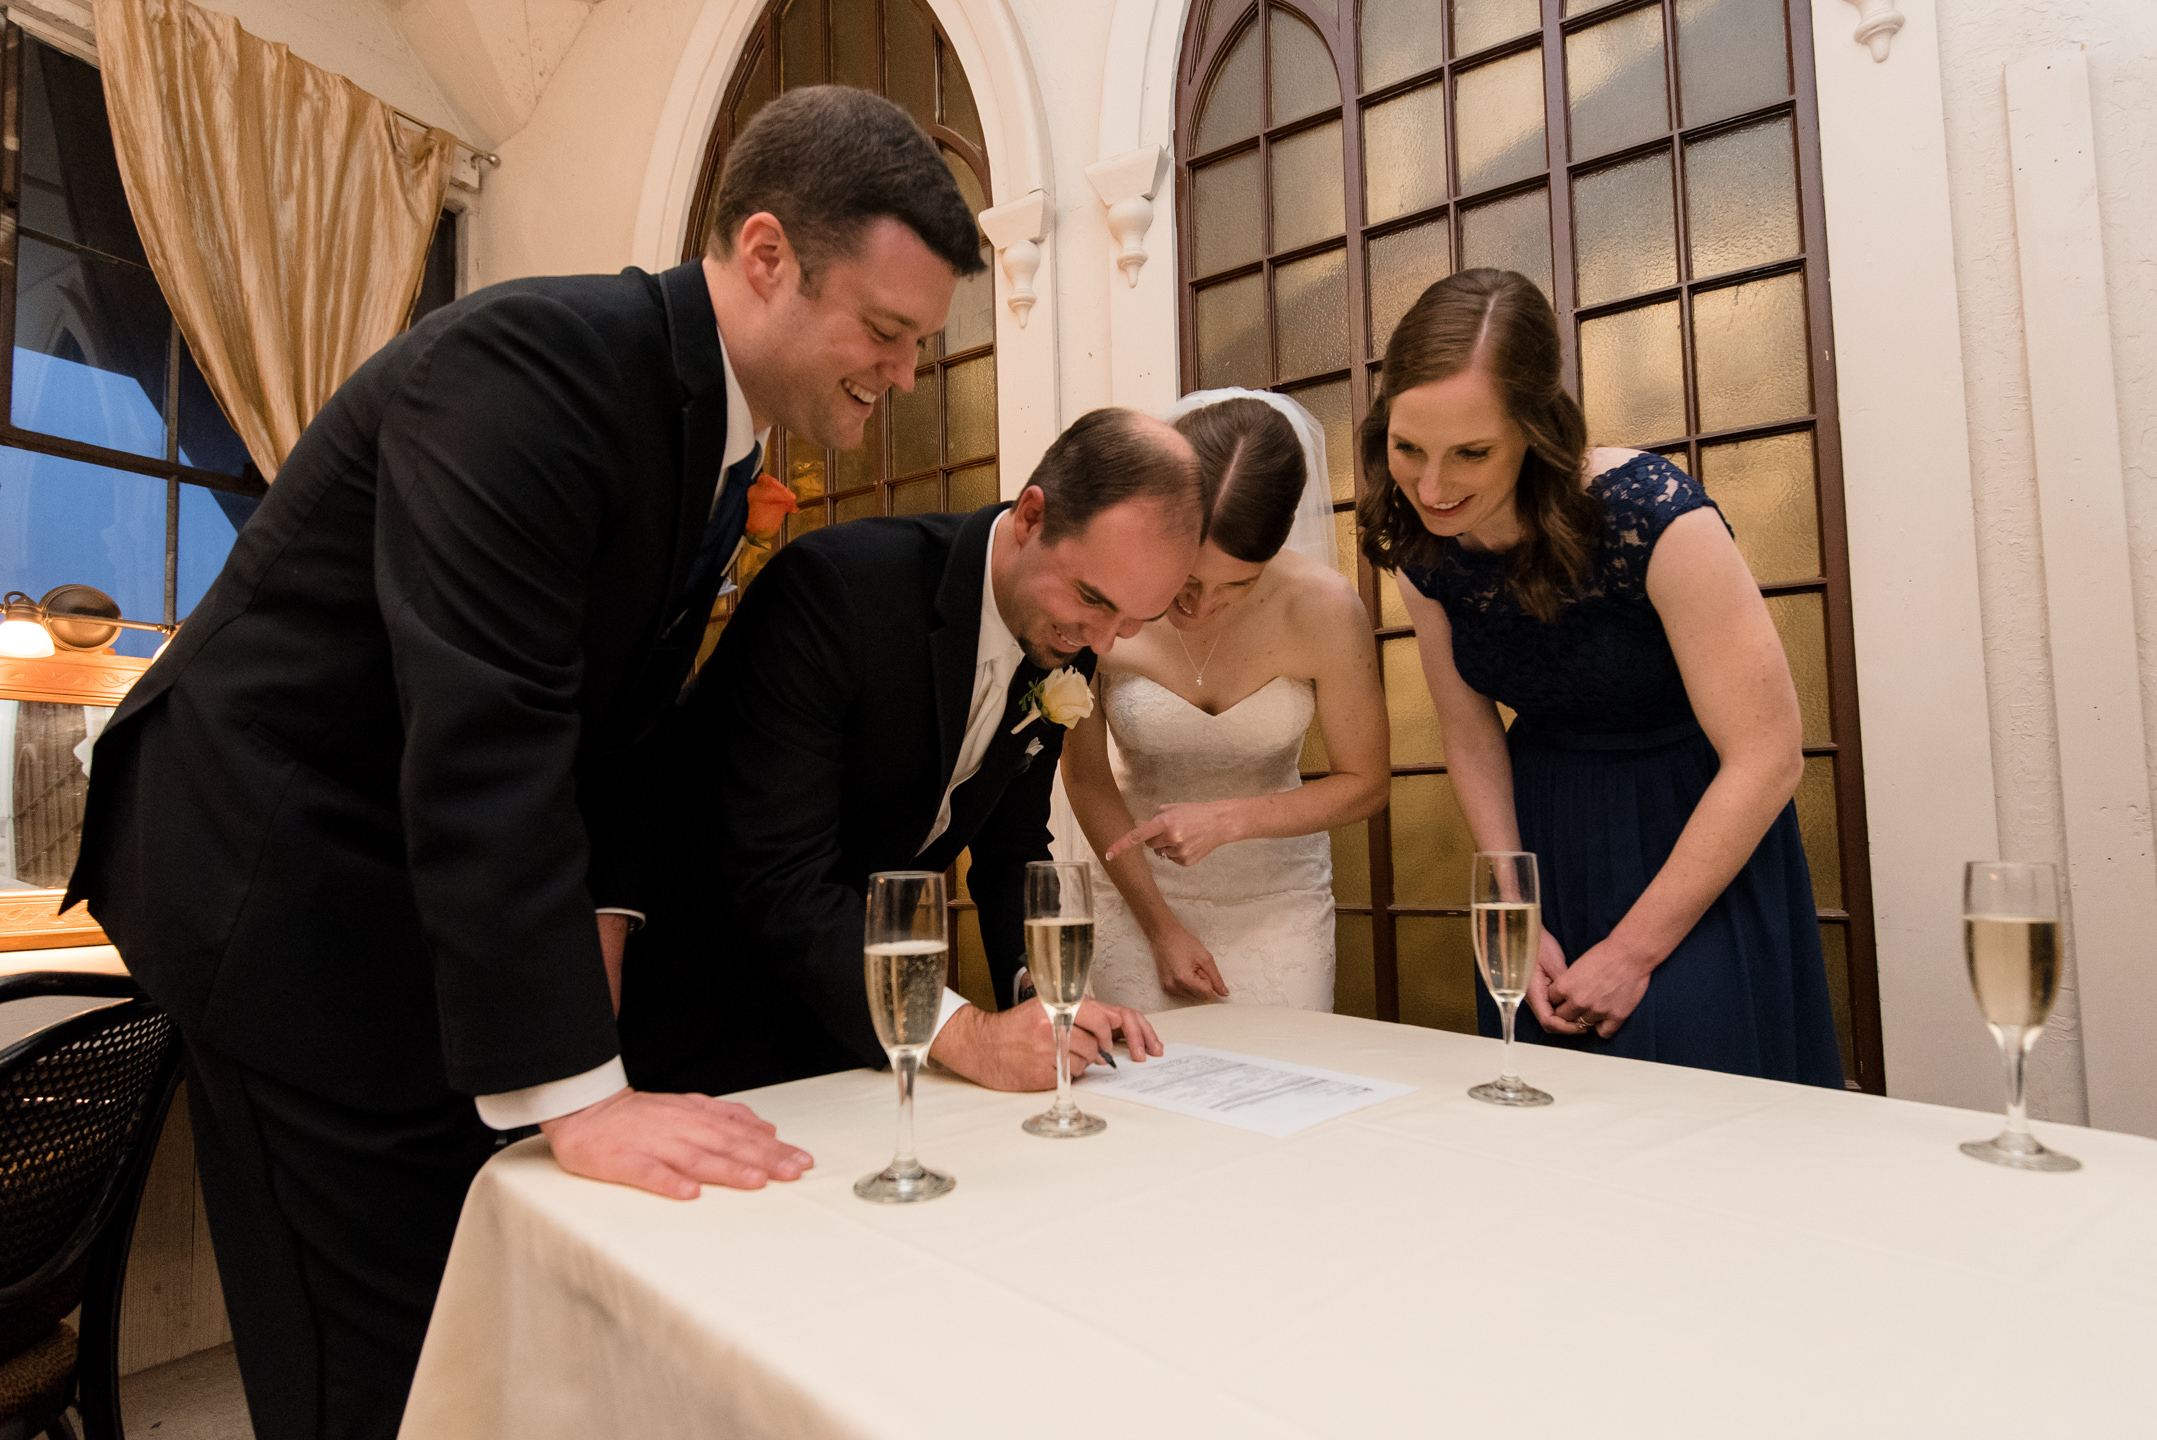 Bride and Groom Sign Marriage Certificate at Lake Union Cafe